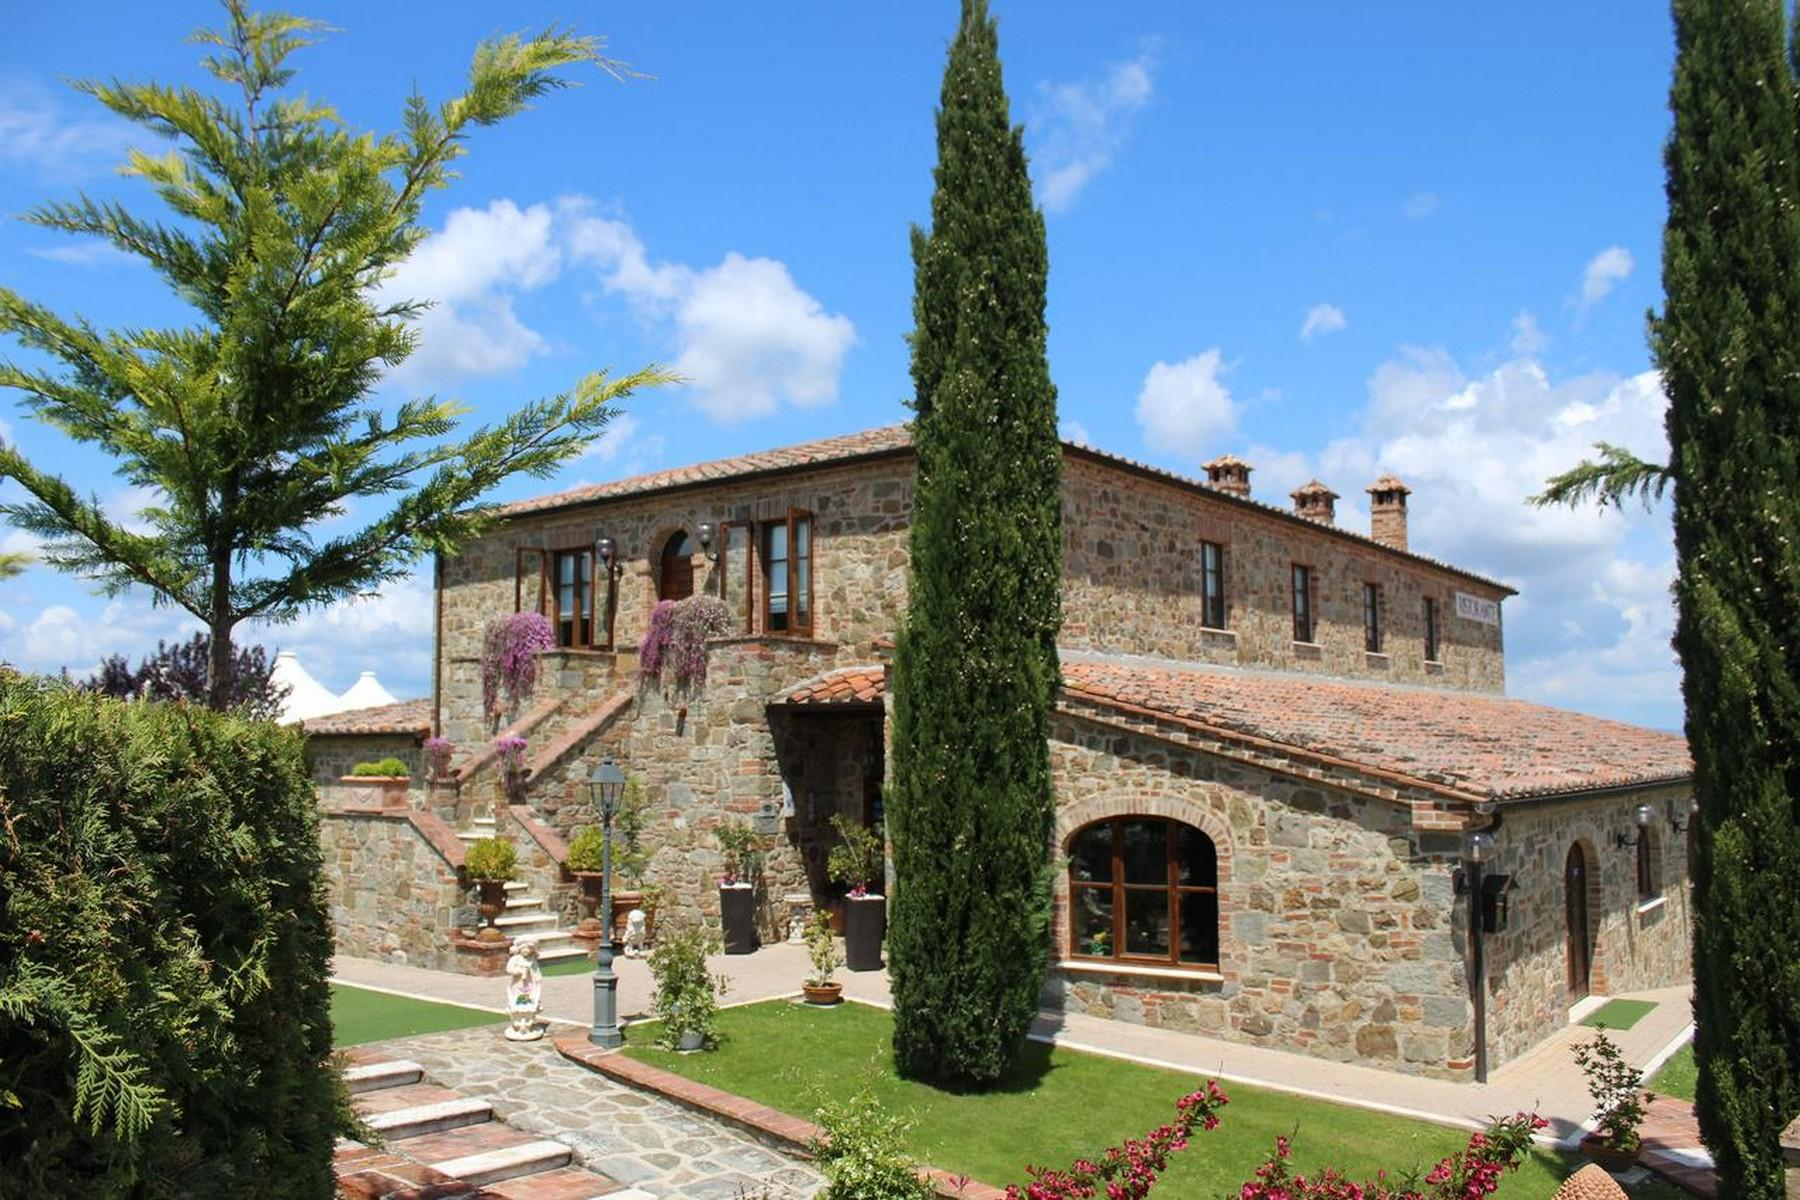 Beautiful Boutique Hotel with Restaurant and SPA in the hills of Torrita di Siena - 1